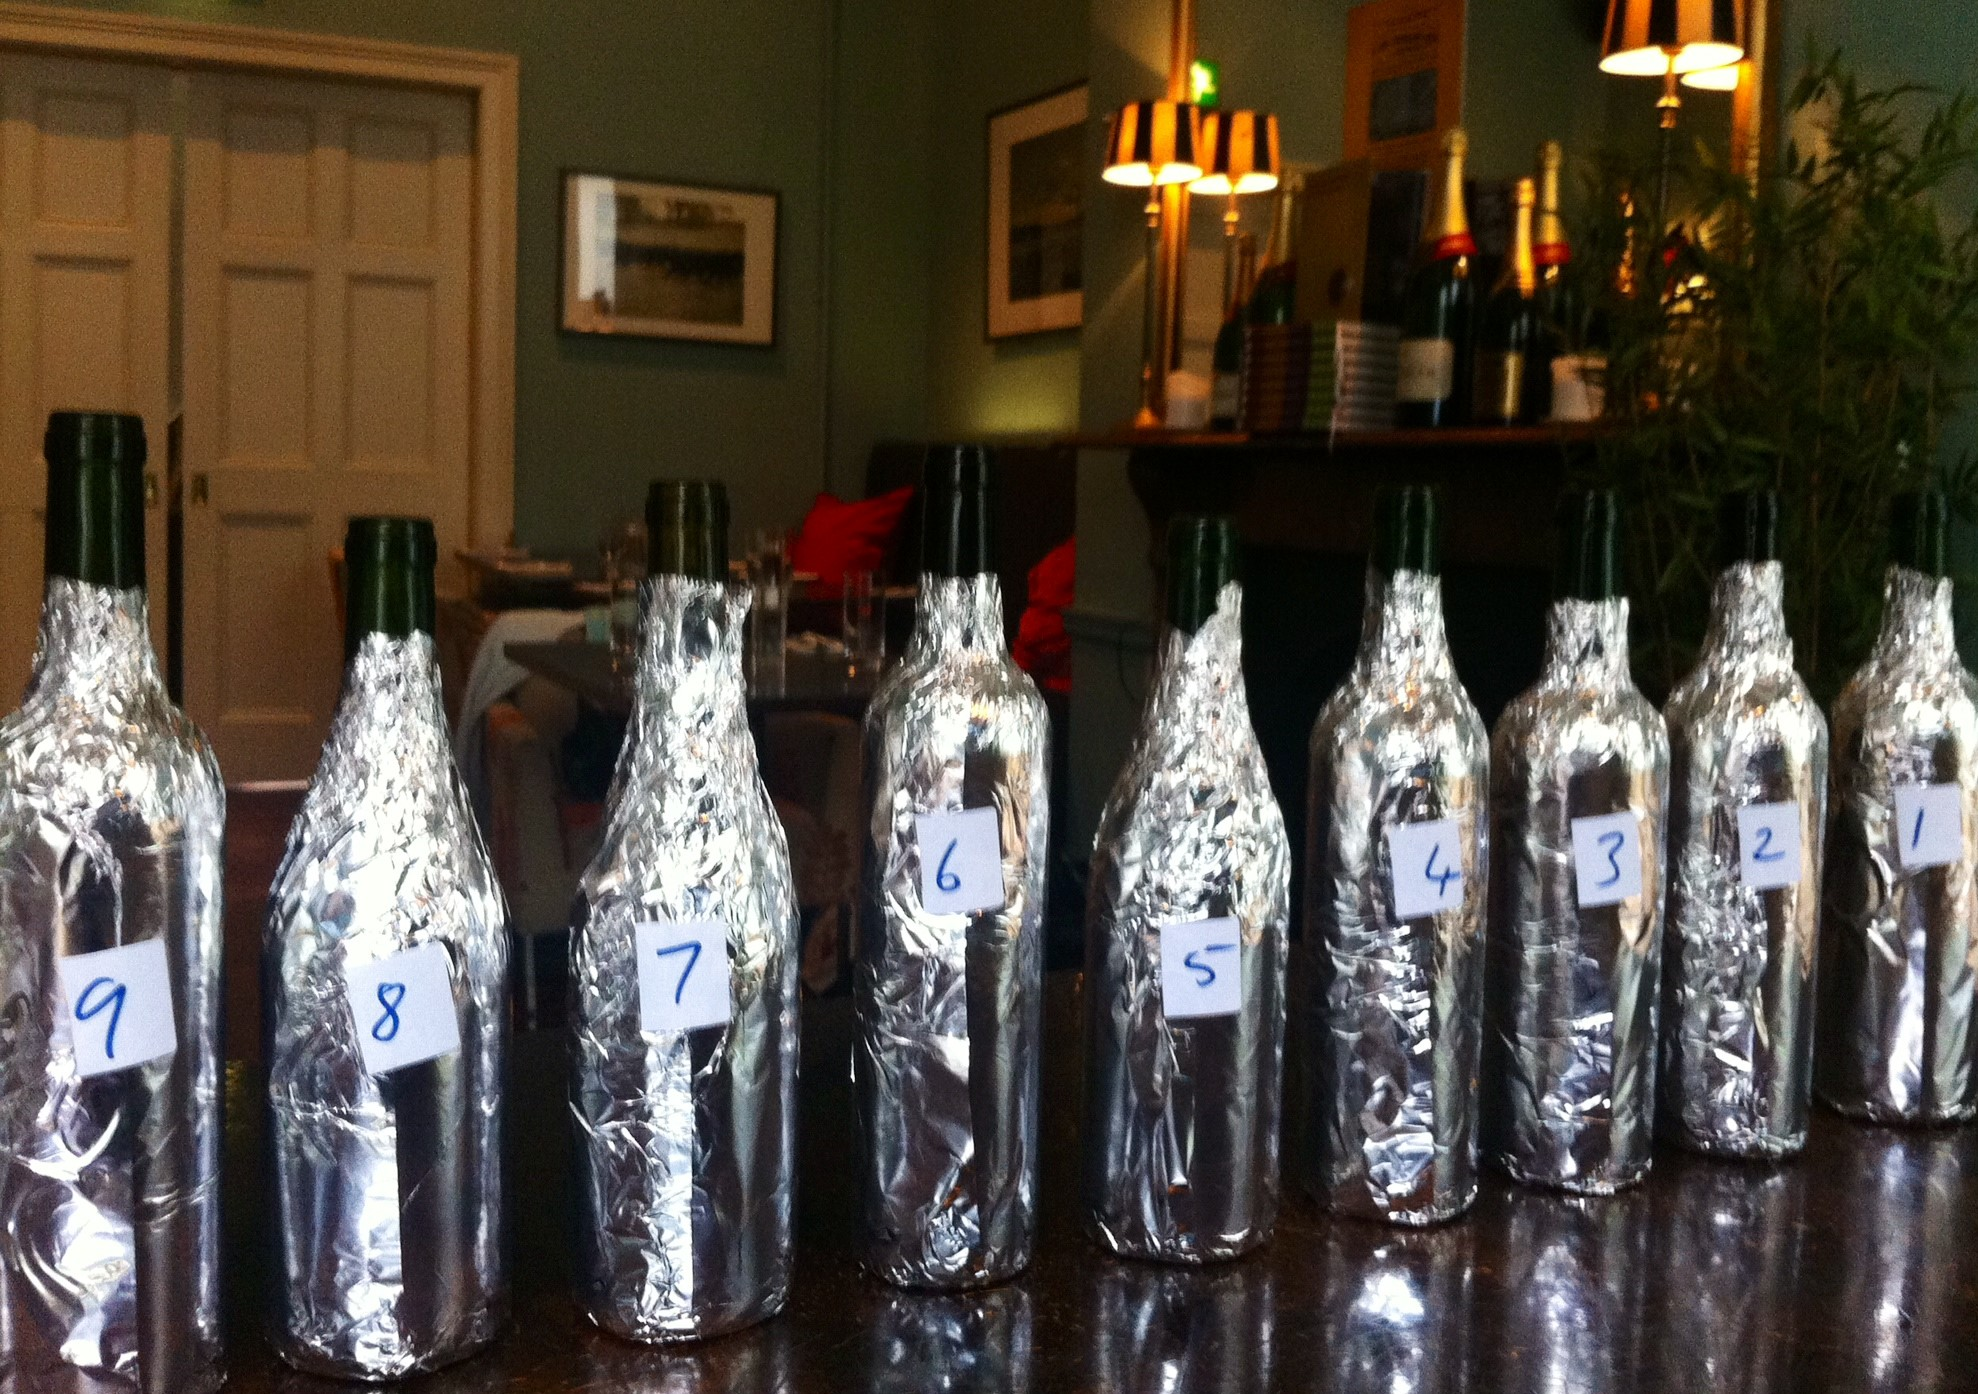 The 15 Series Week 4 15 Tips For Hosting A Wine Tasting